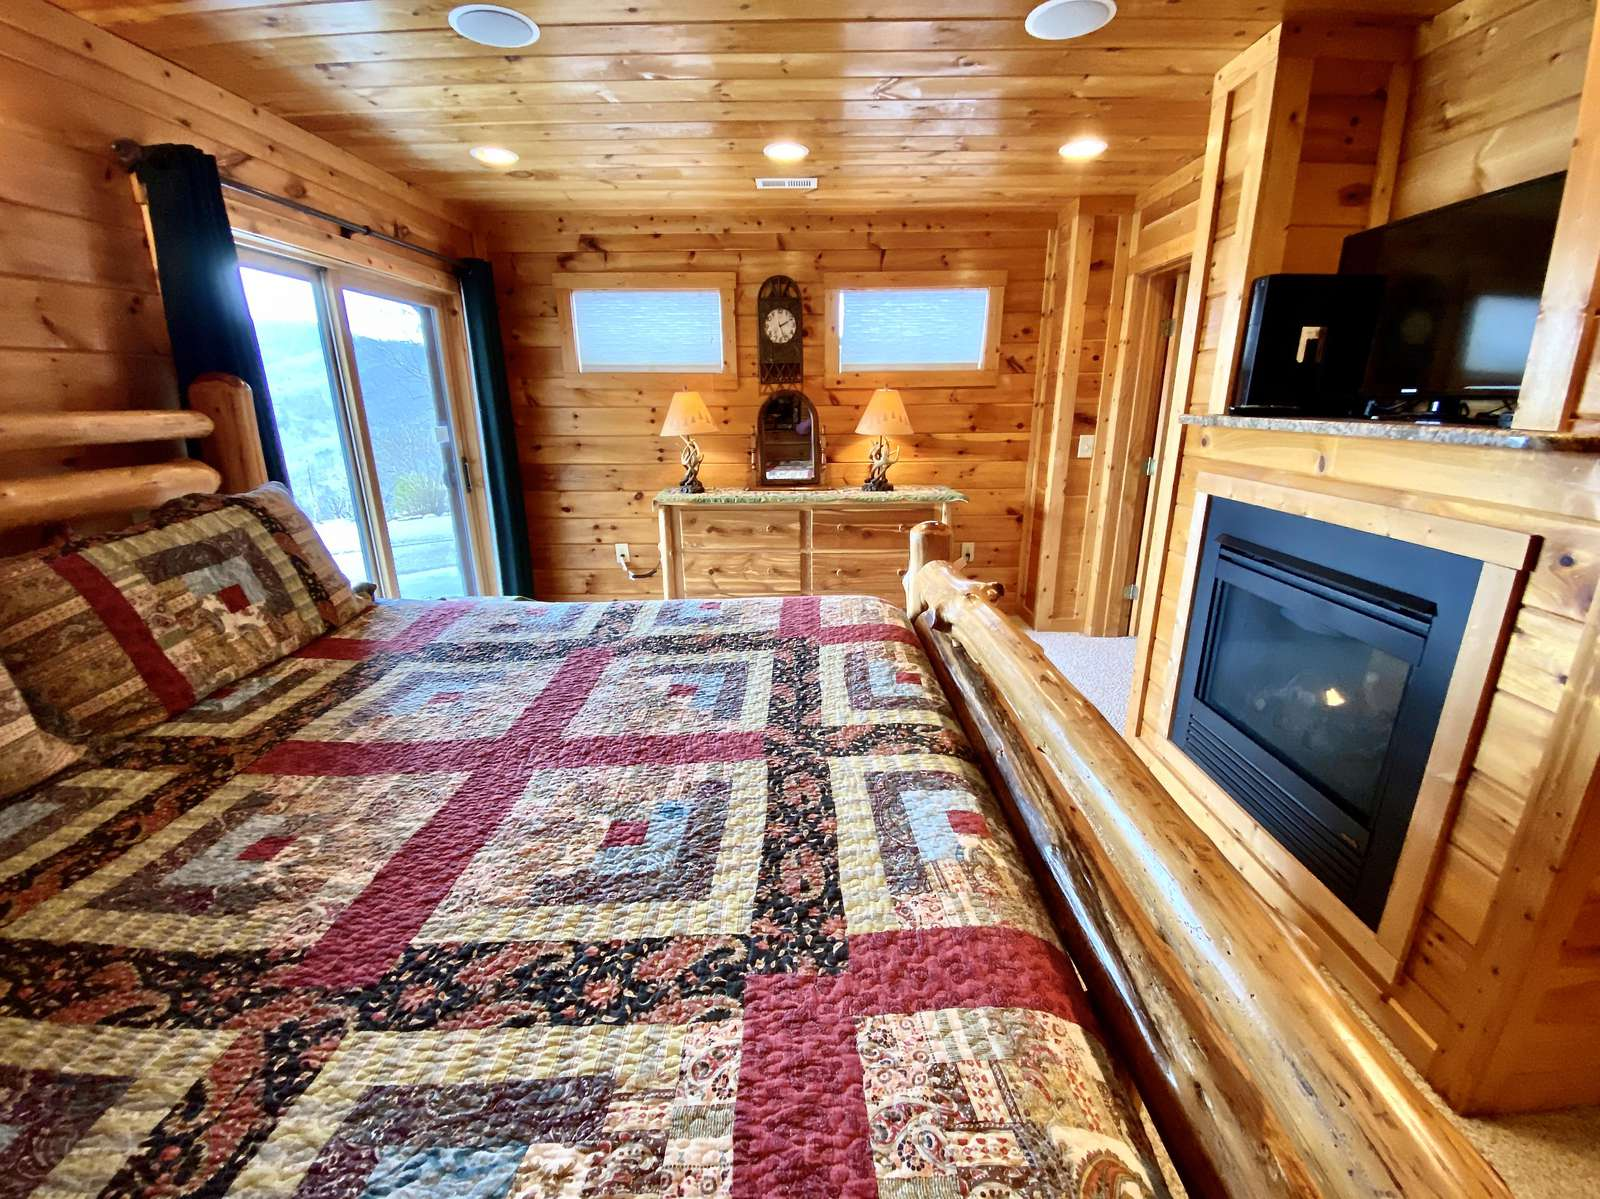 Spacious and Private Master Bedroom on the lower level